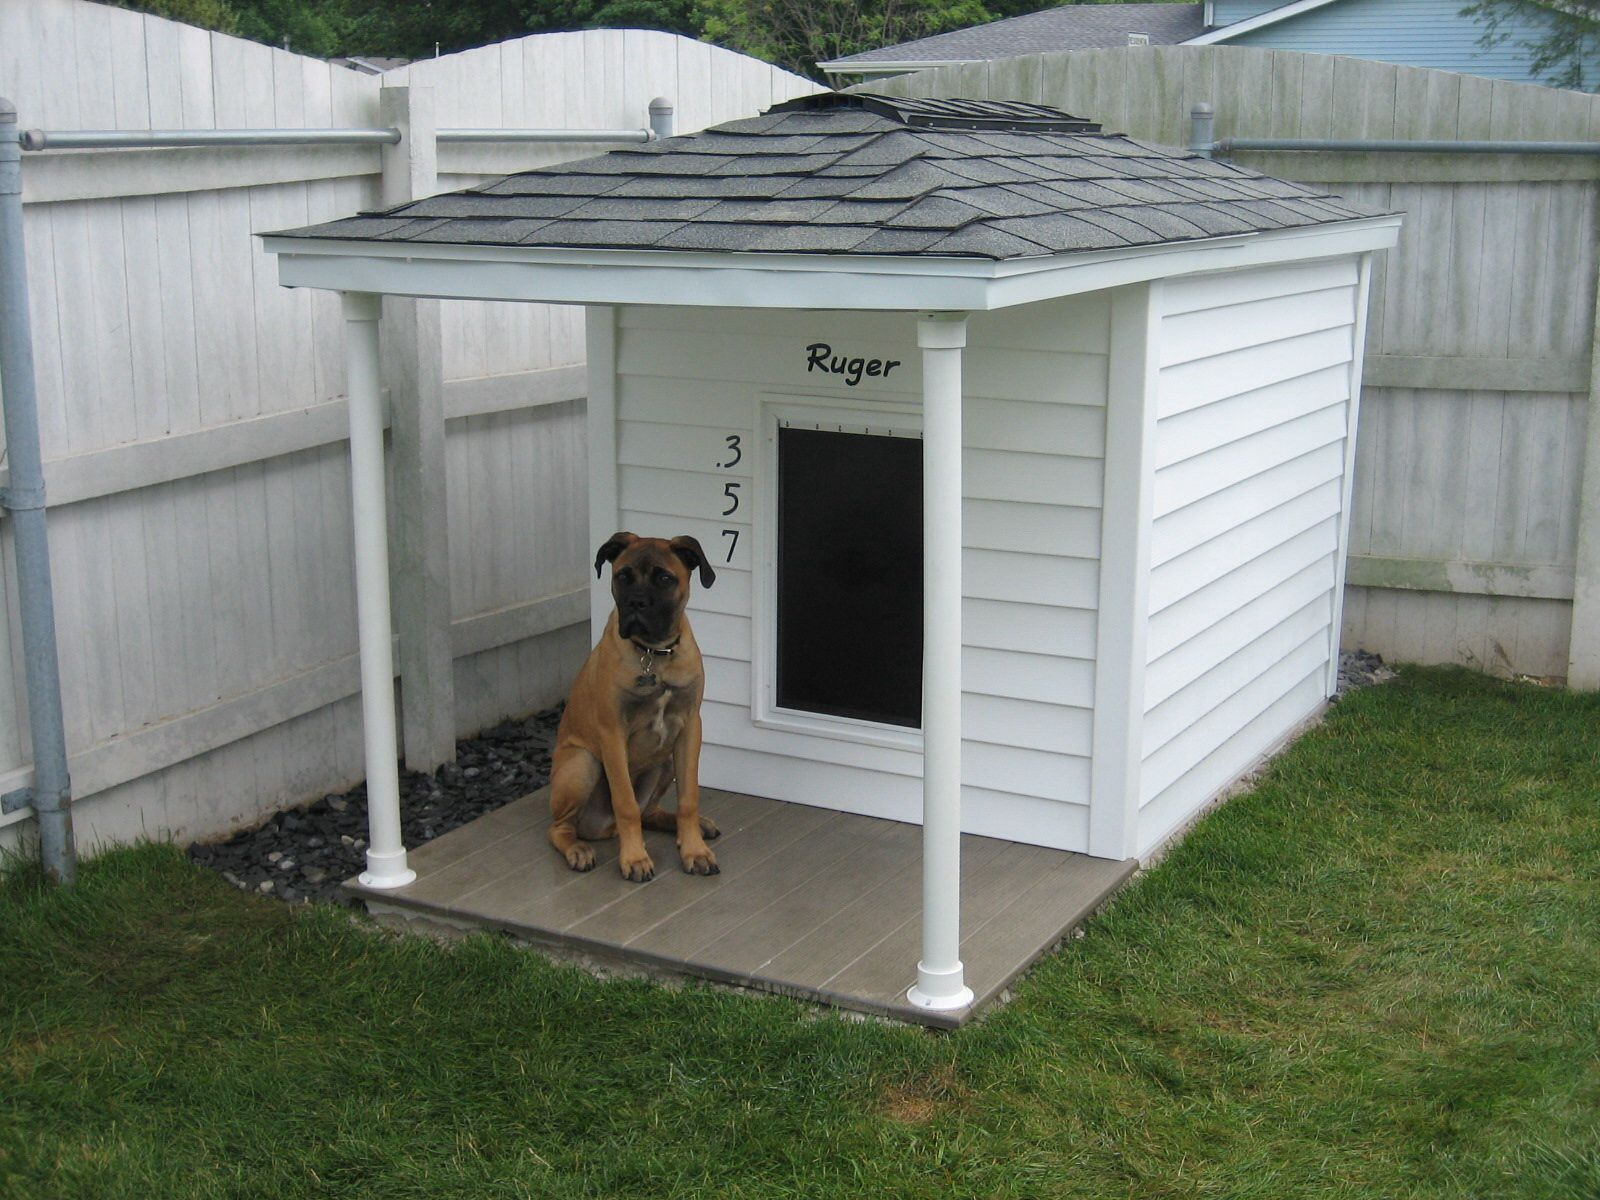 My Husband Built This Dog House It Has Siding Is Insulated Has